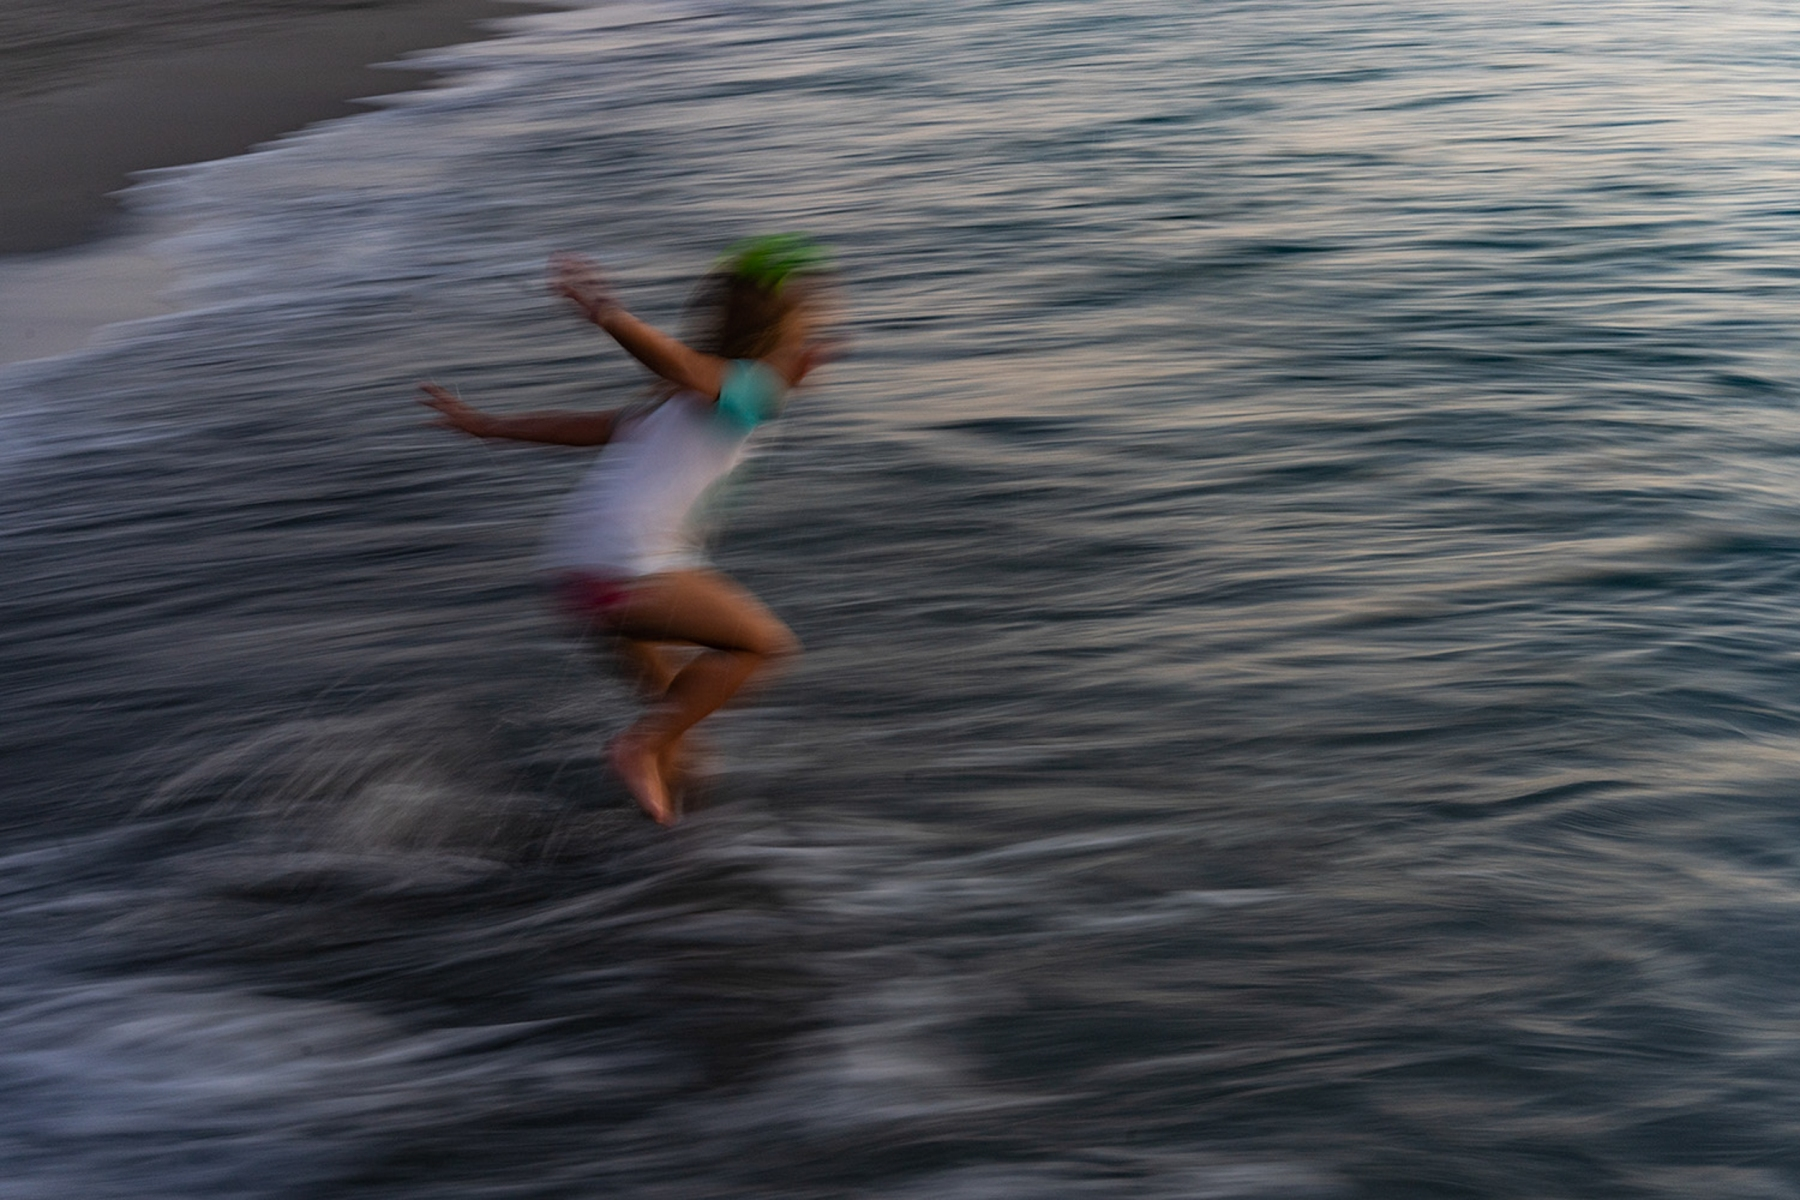 A young child plays at Venice beach Fla.